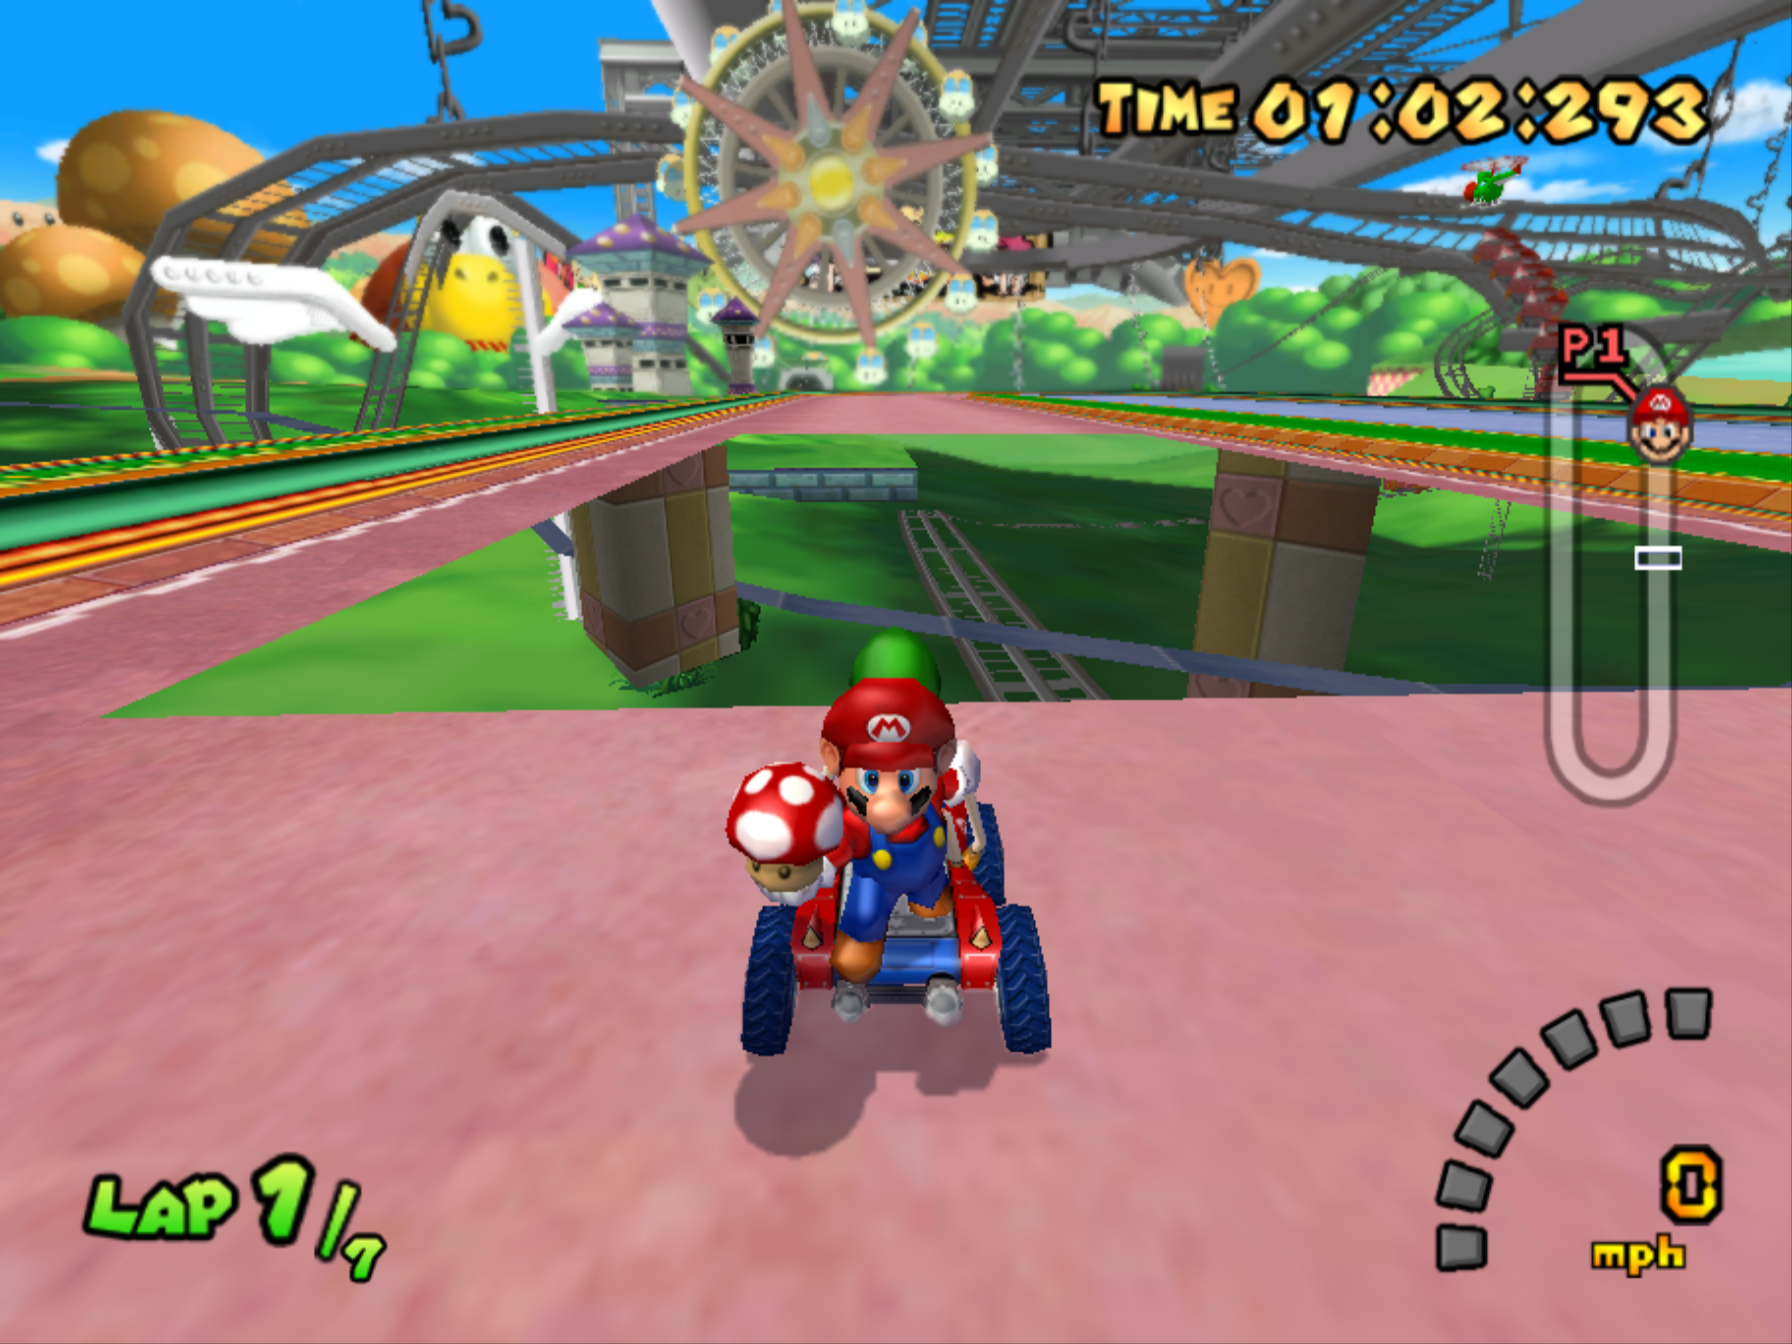 super mario kart emulator mac